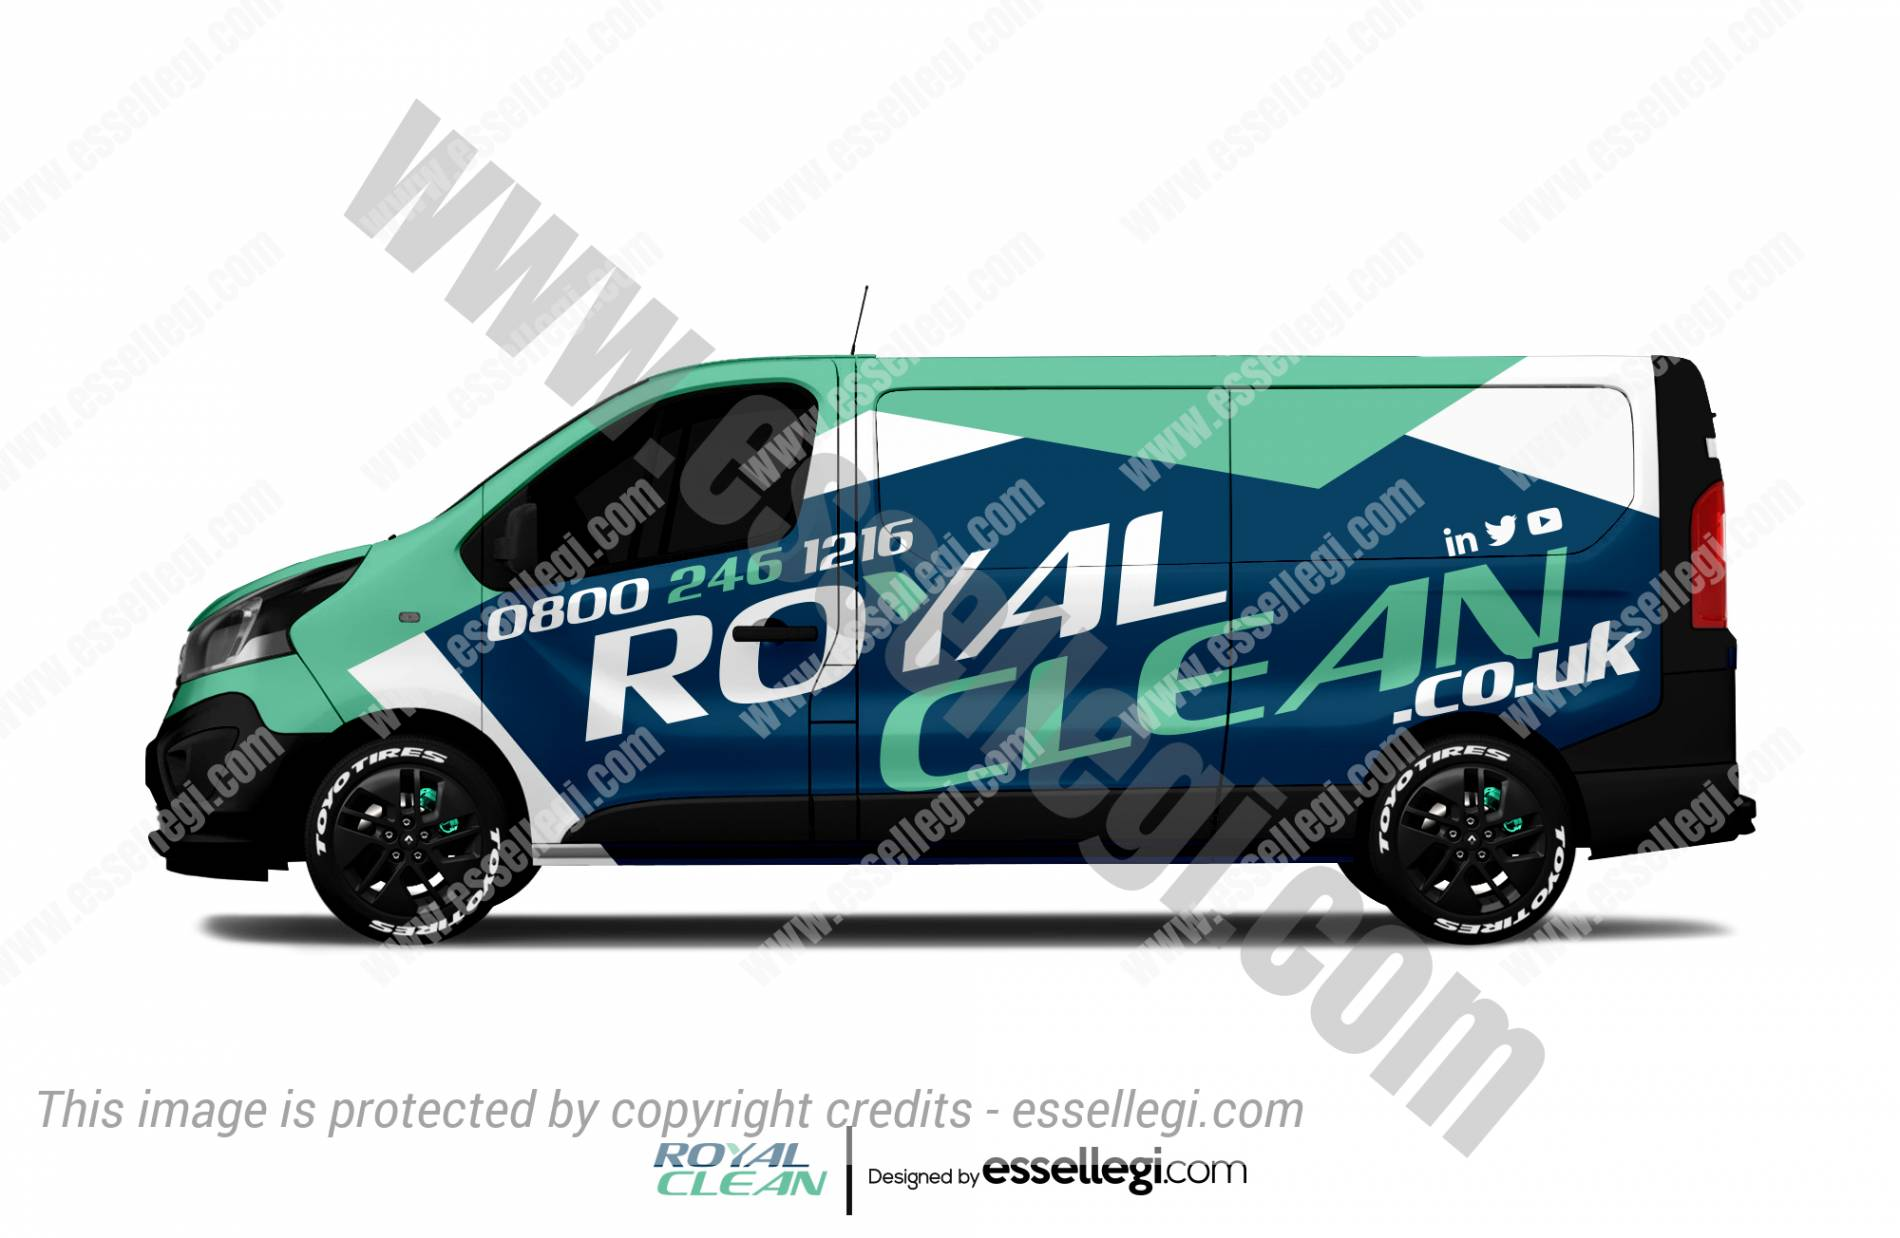 Vauxhall Vivaro Wrap Design. Vauxhall Vivaro | Van Wrap Design by Essellegi. Van Signs, Van Signage, Van Wrapping, Van Signwriting, Van Wrap Designer, Signs for Van, Van Logo, Van Graphic by Essellegi.